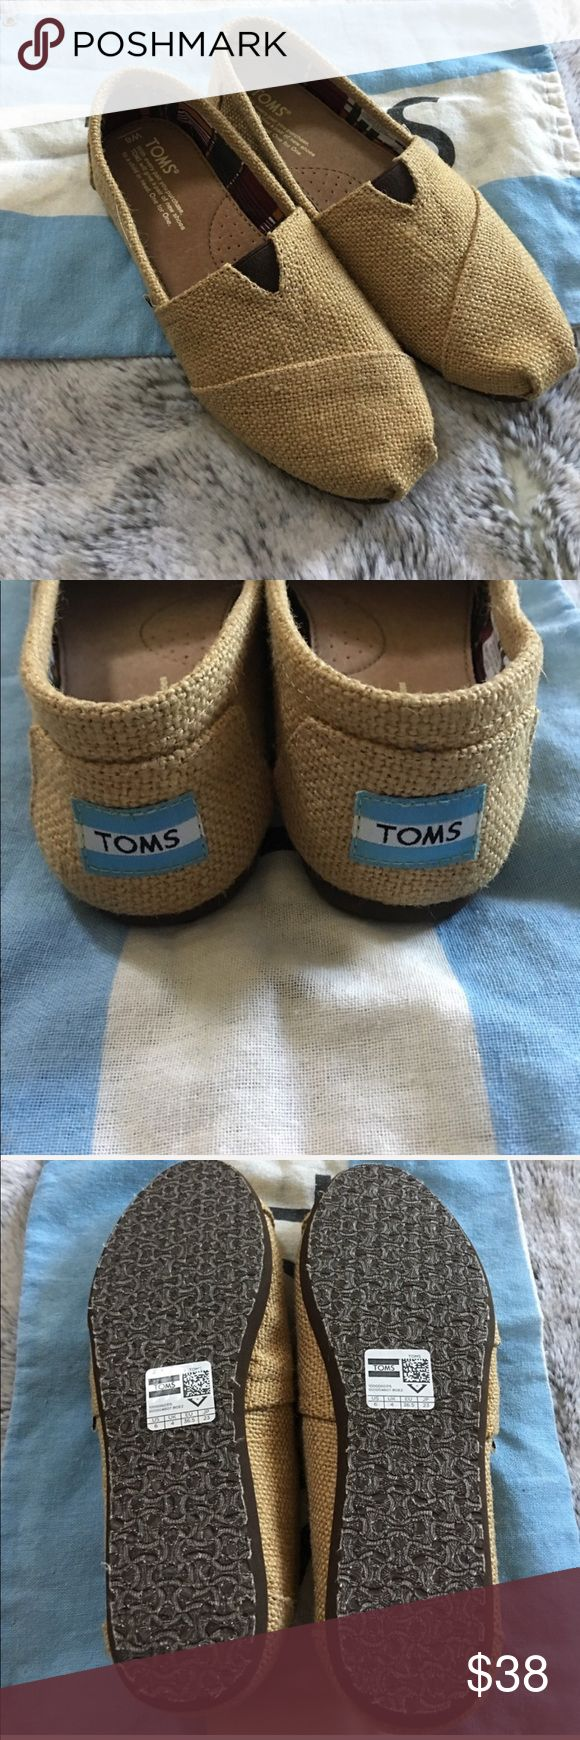 New! Burlap TOMS New! Natural Burlap TOMS. Size 6. Comes with TOMS bag. No box. Toms Shoes Flats & Loafers